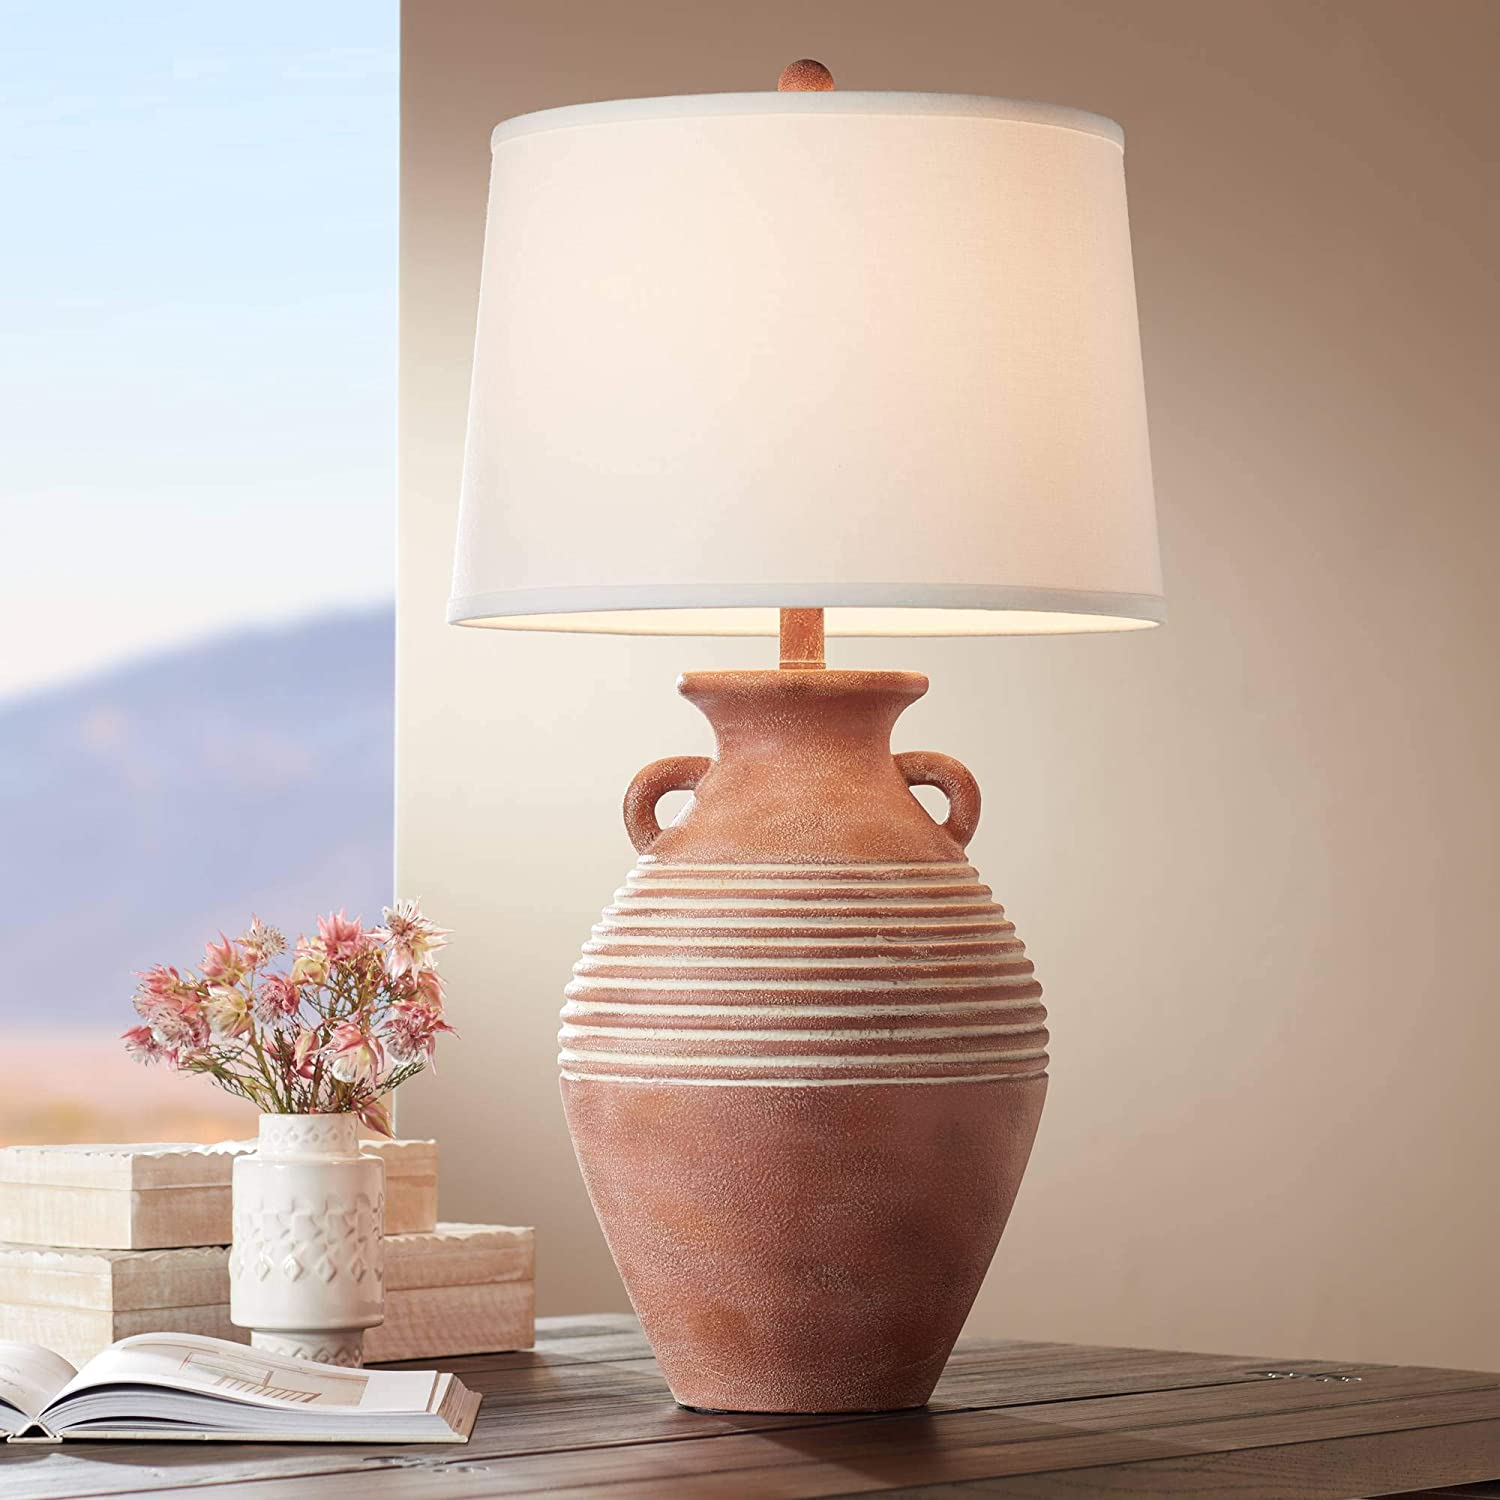 Sierra Rustic Table Lamp Southwest Style Red Brown Sandstone Linen Drum Shade for Living Room Bedroom Bedside Nightstand Office Family - John Timberland